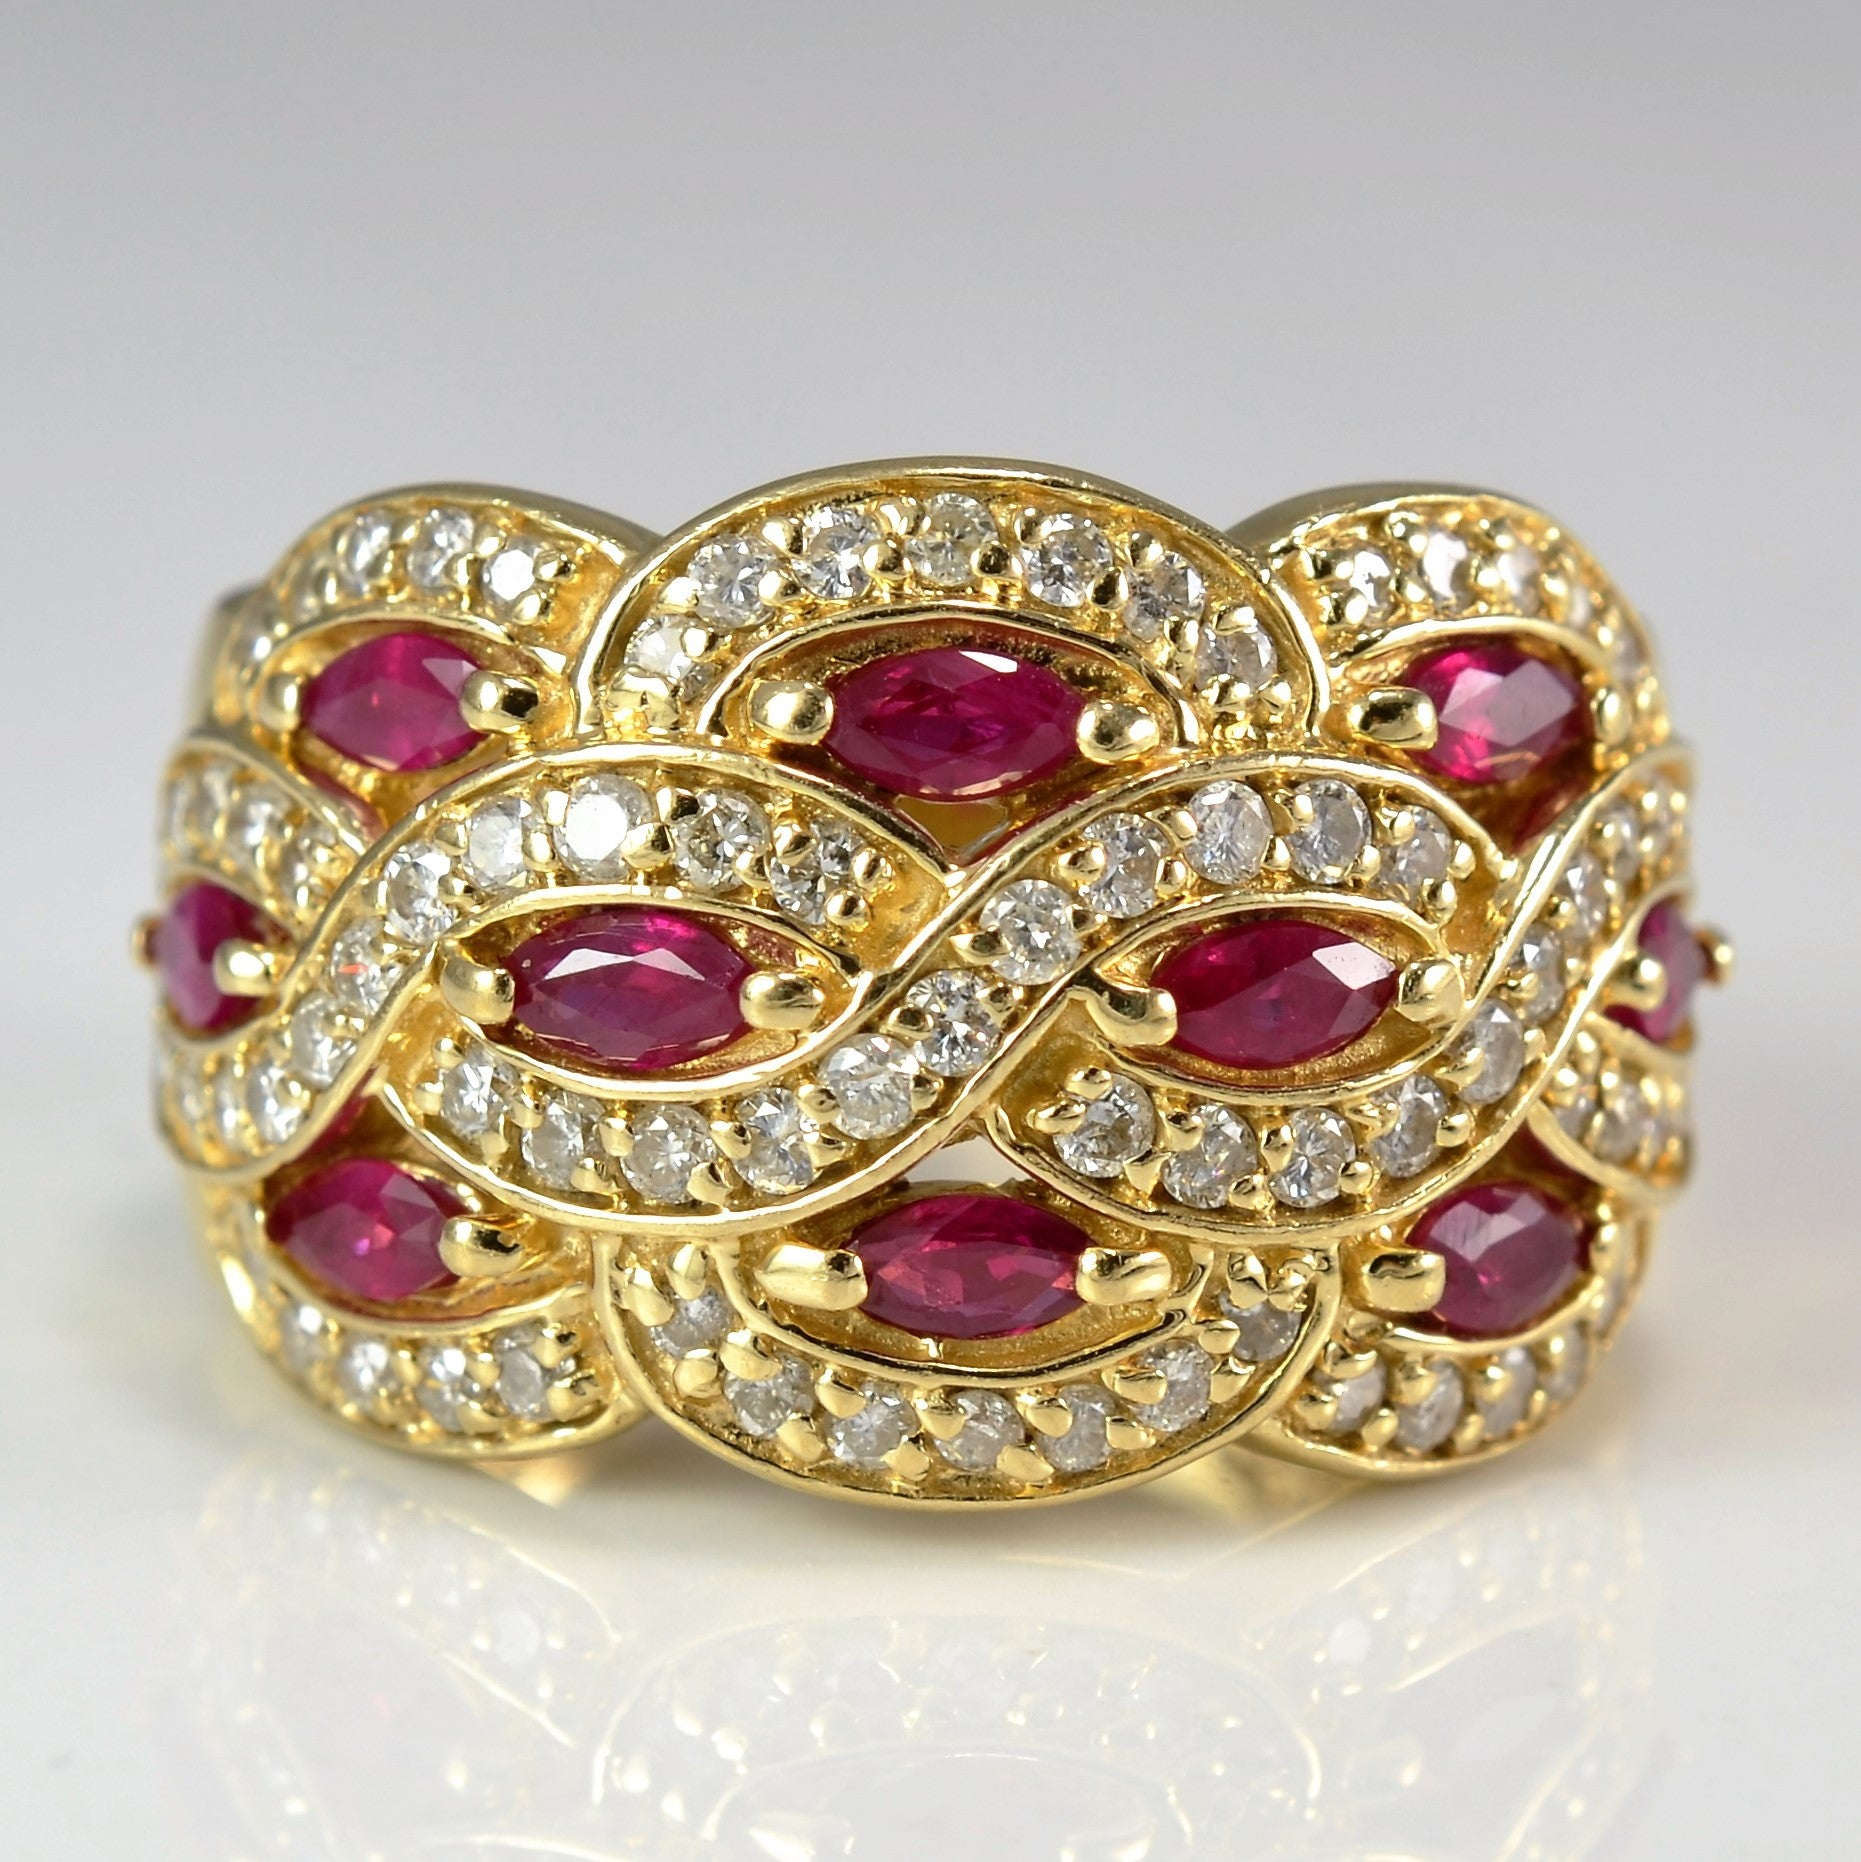 Ruby & Diamond Woven Cocktail Ring | 0.50 ctw, SZ 7.25 |